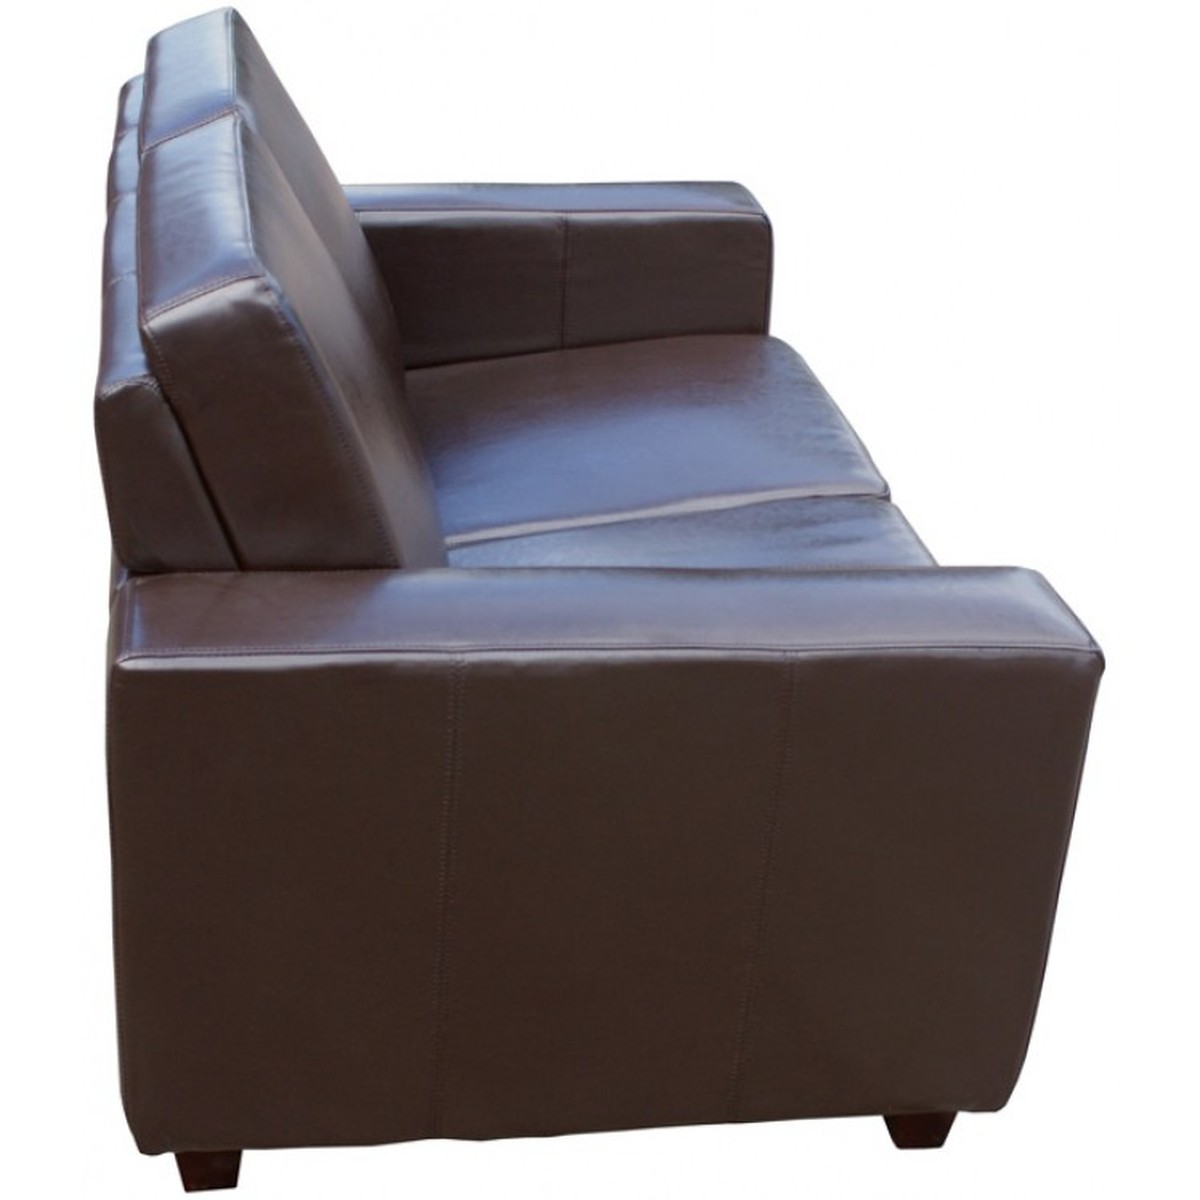 Secondhand Hotel Furniture Lounge And Bar New Brown